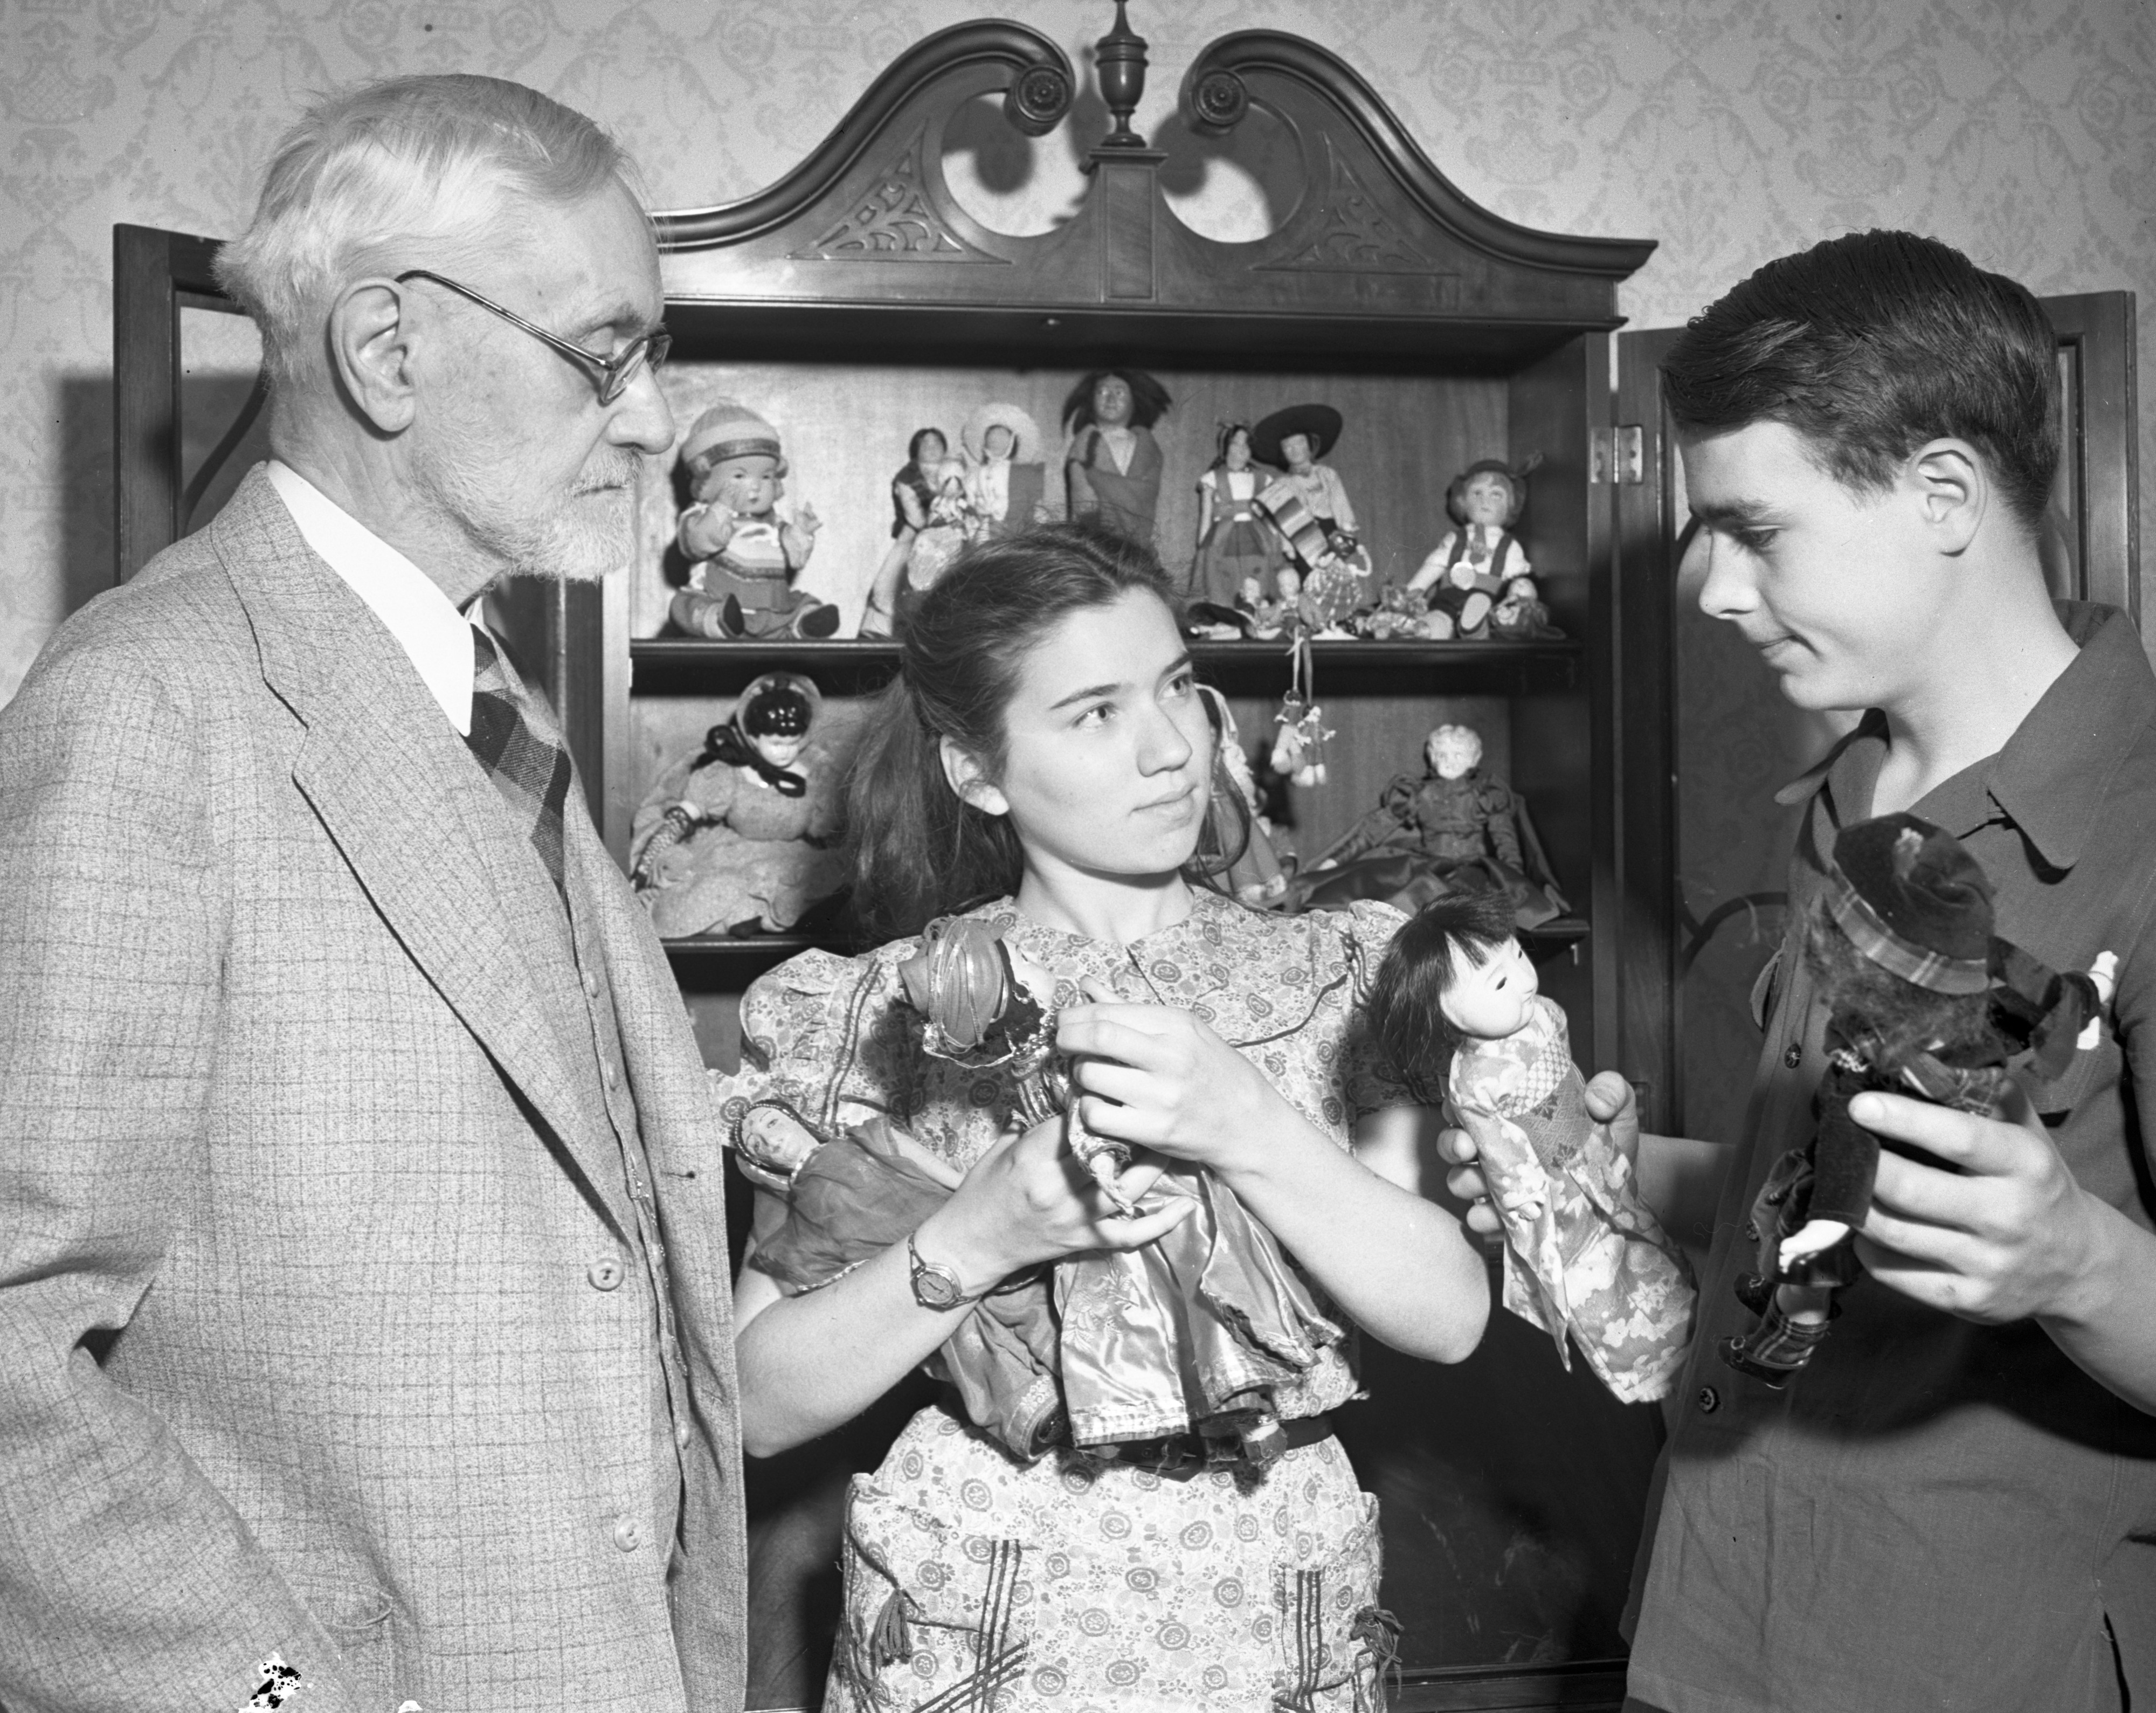 Bobby and the Old Professor, with Julia: Dolls, May 1940 image